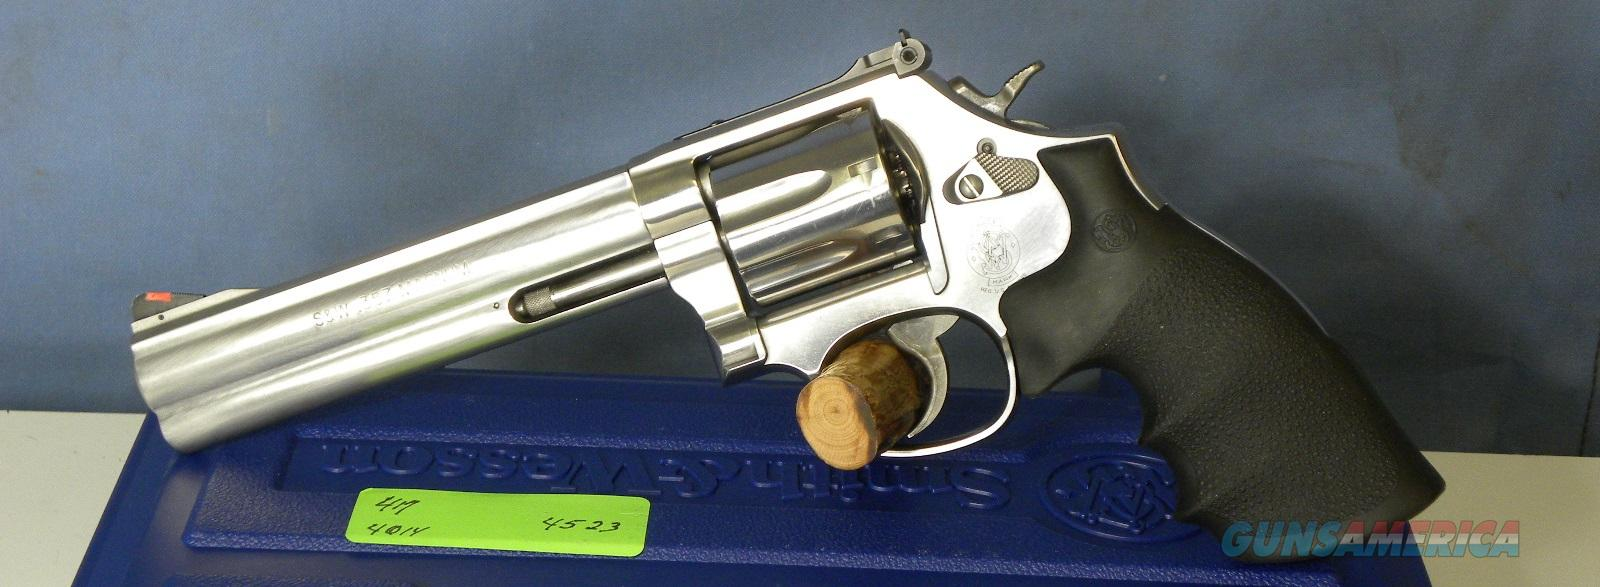 S&W 686-6 Super Tuned 178030  Guns > Pistols > Smith & Wesson Revolvers > Full Frame Revolver